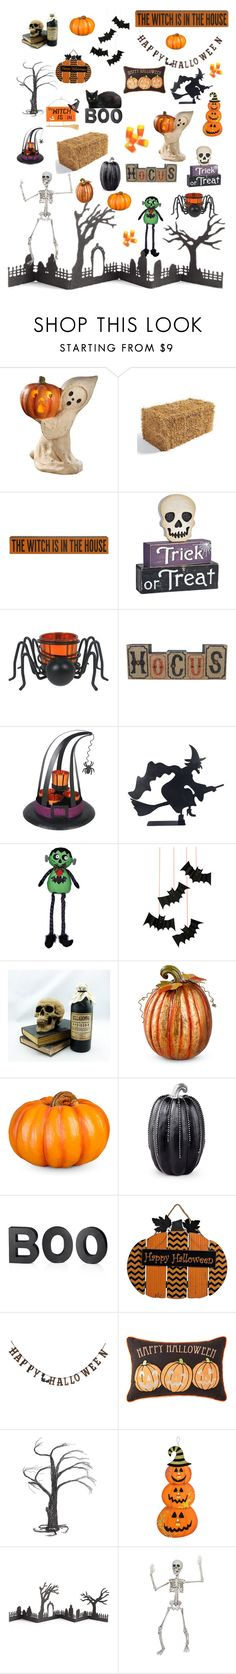 """Happy Halloween 👻🎃☠️"" by miss-shan-nicole ❤ liked on Polyvore featuring interior, interiors, interior design, home, home decor, interior decorating, Bethany Lowe, Grandin Road, Paul Frank and Meri Meri"